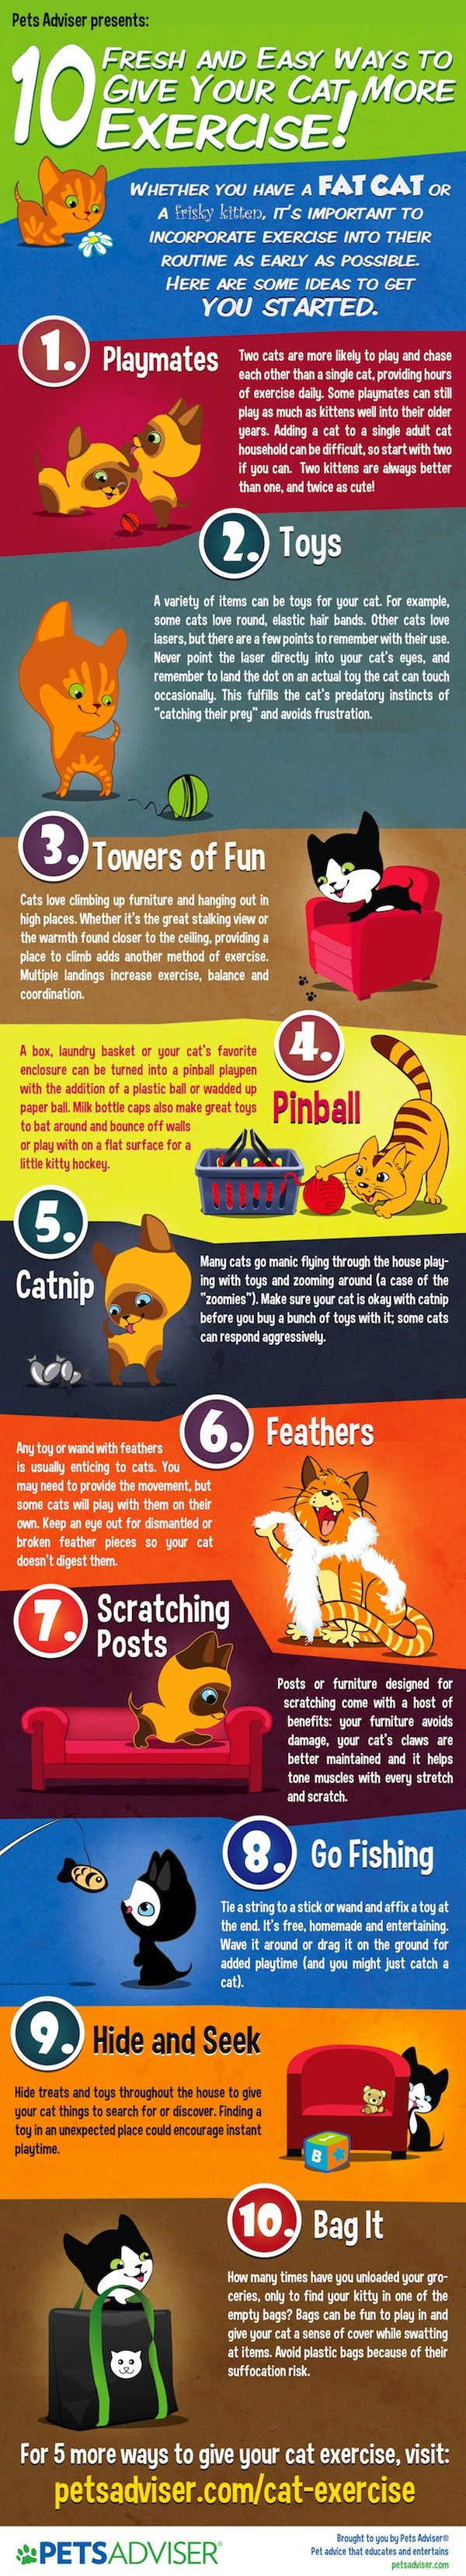 10 fresh and easy ways to give your cat more exercise (infographic)